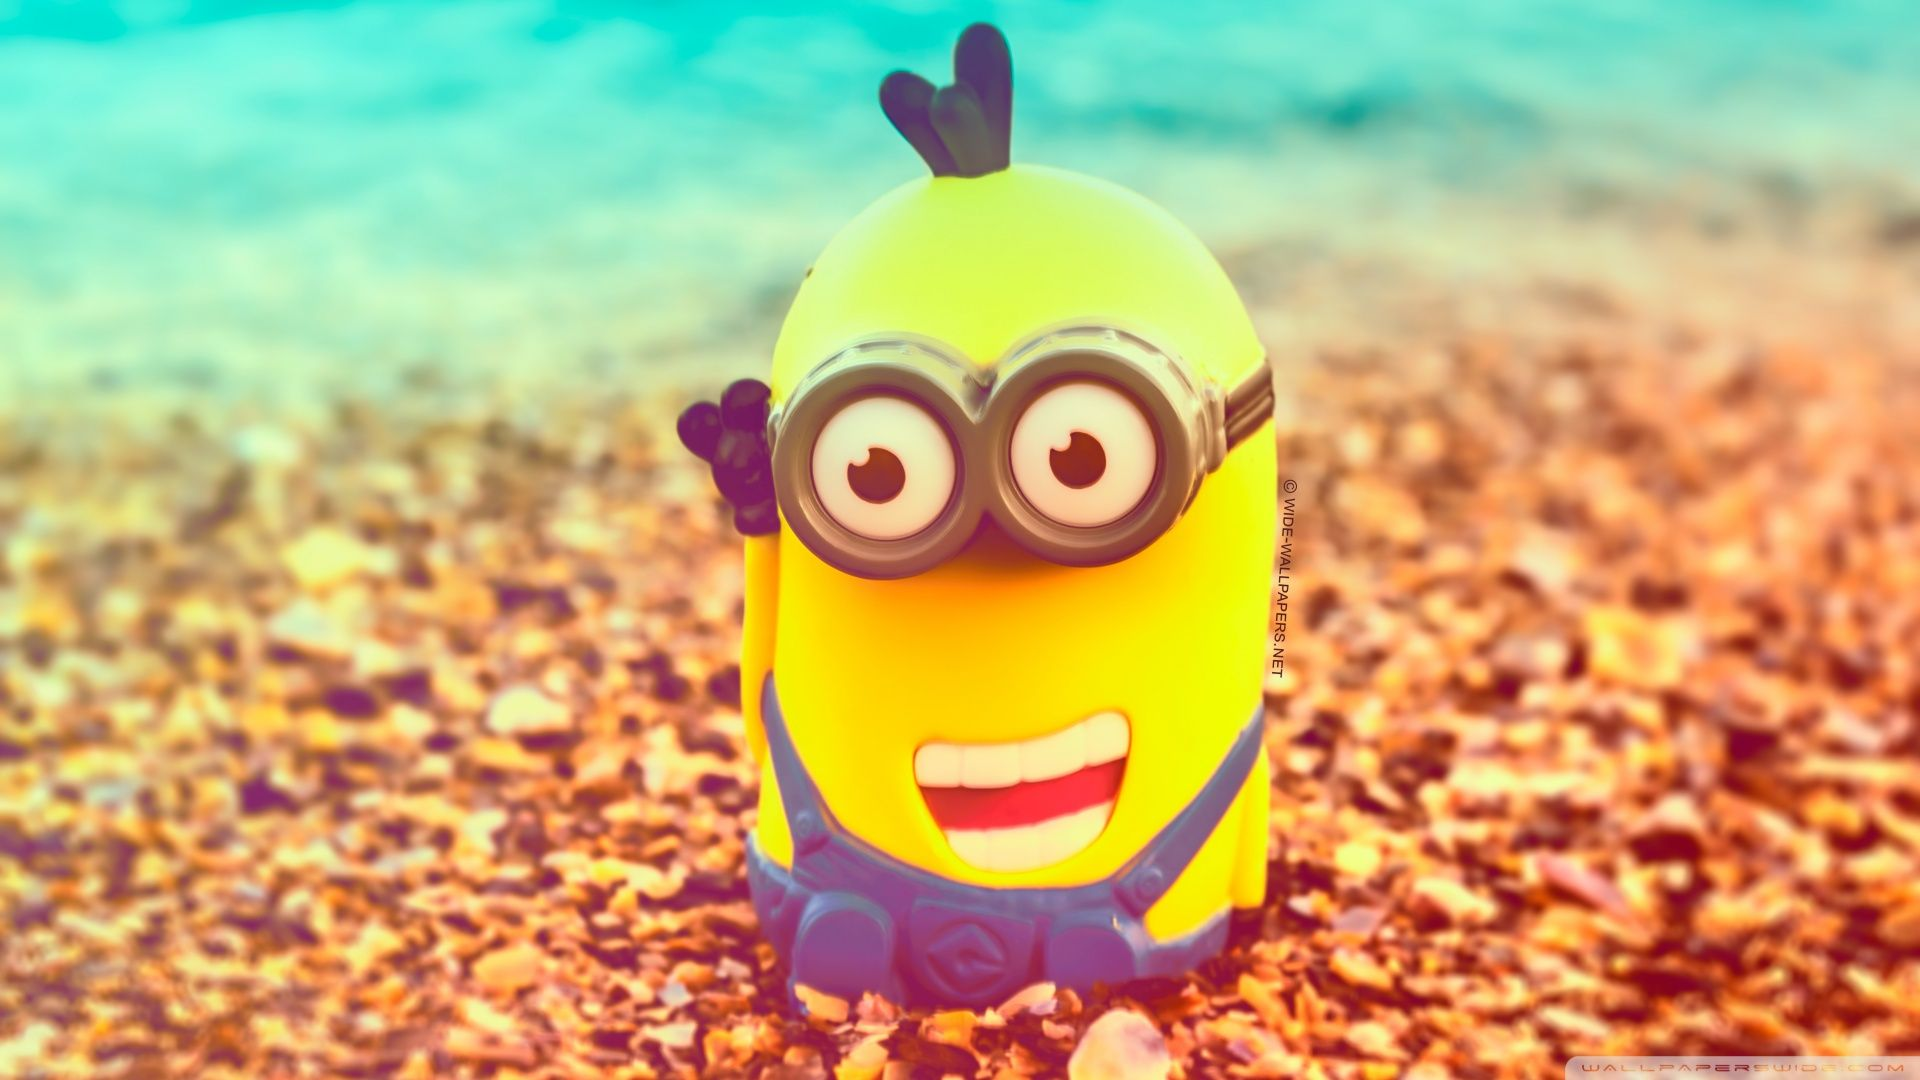 3 minions images